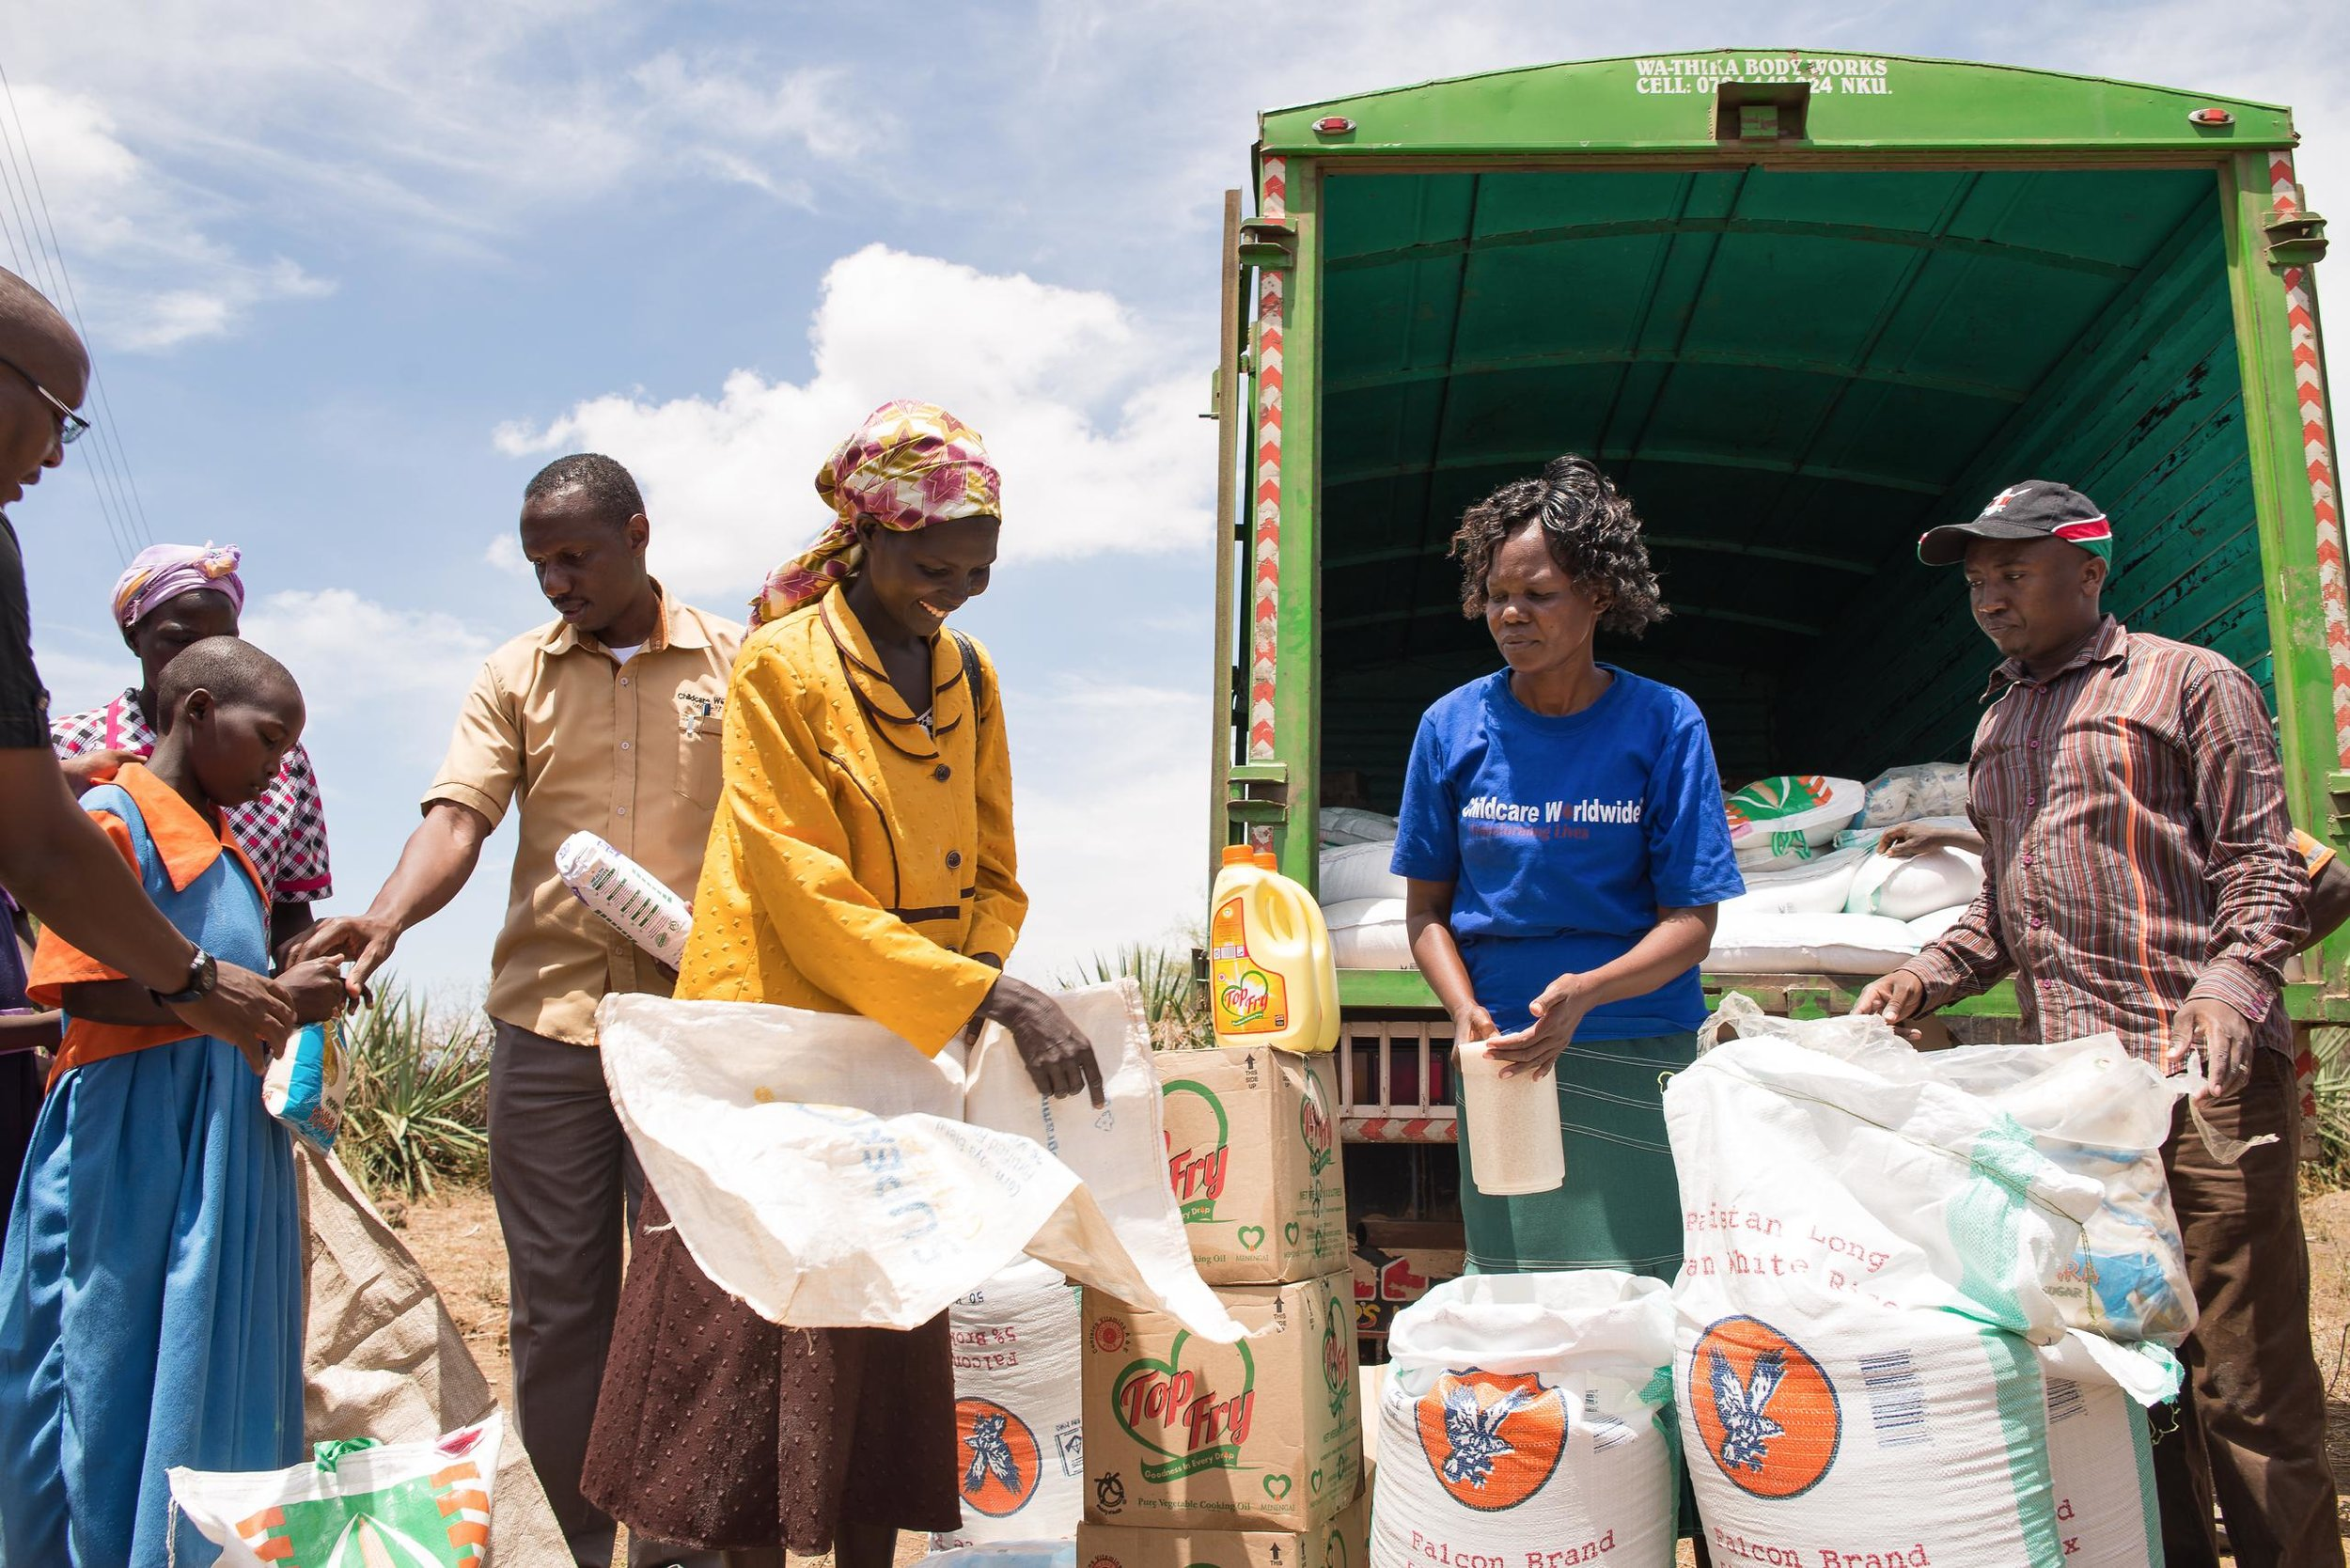 Families wait for emergency food relief at a distribution site in Baringo County, Kenya. Kenya is one of several East African countries experiencing a severe drought leading to widespread food insecurity throughout the region.